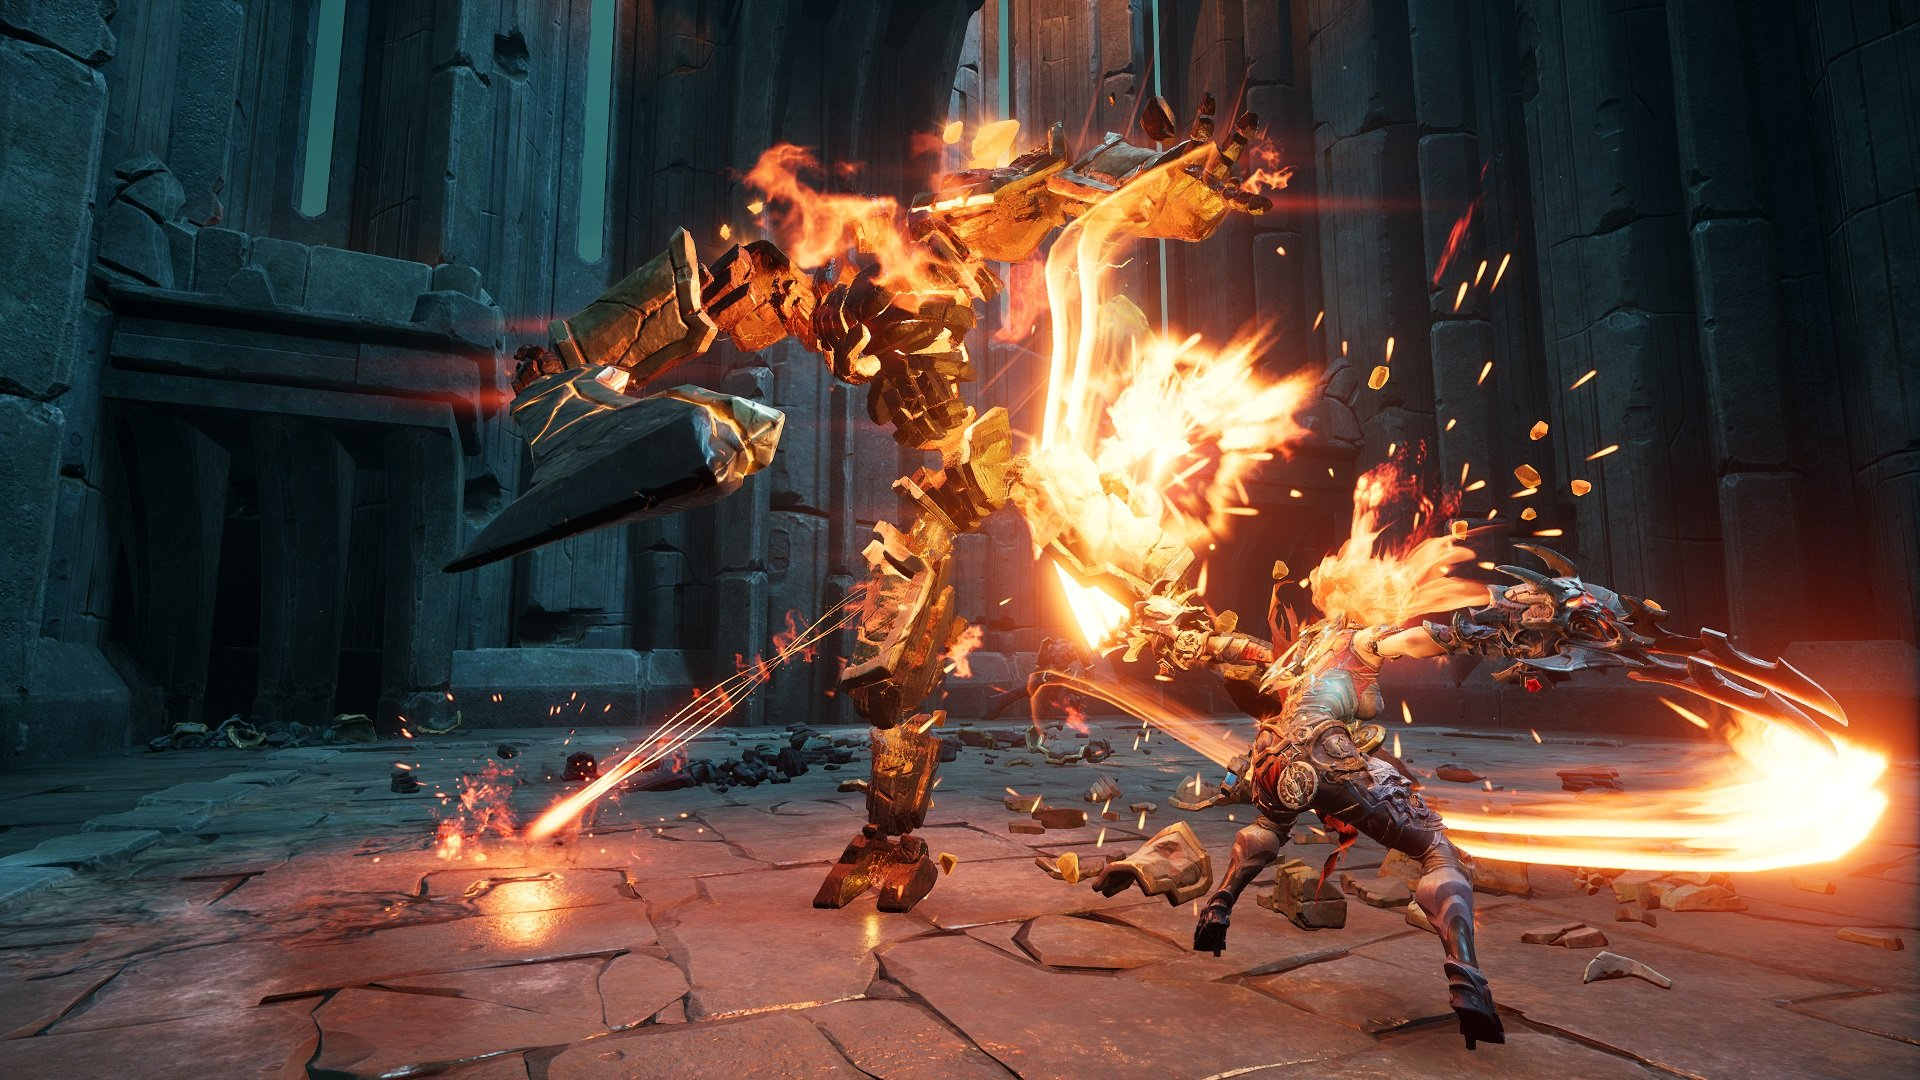 Darksiders III finally got its Abyssal Armor in today's Keepers of the Void add-on screenshot